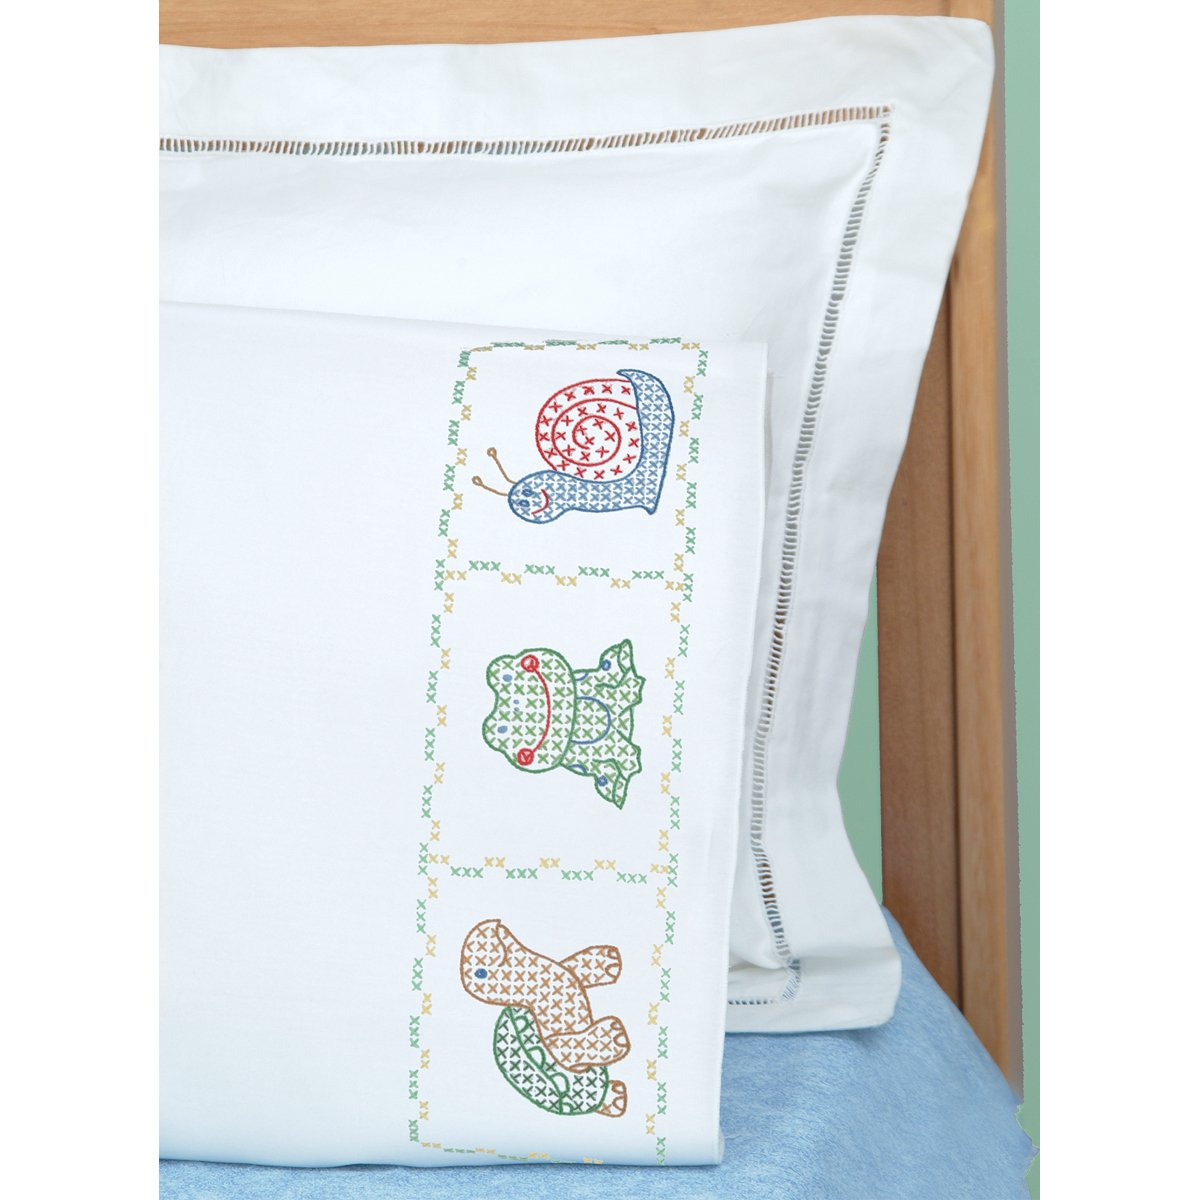 Jack Dempsey Children's Stamped Pillowcase With White Perle Edge 1/Pkg-Froggy Notions - In Network 050993 PA-JDN1605.451